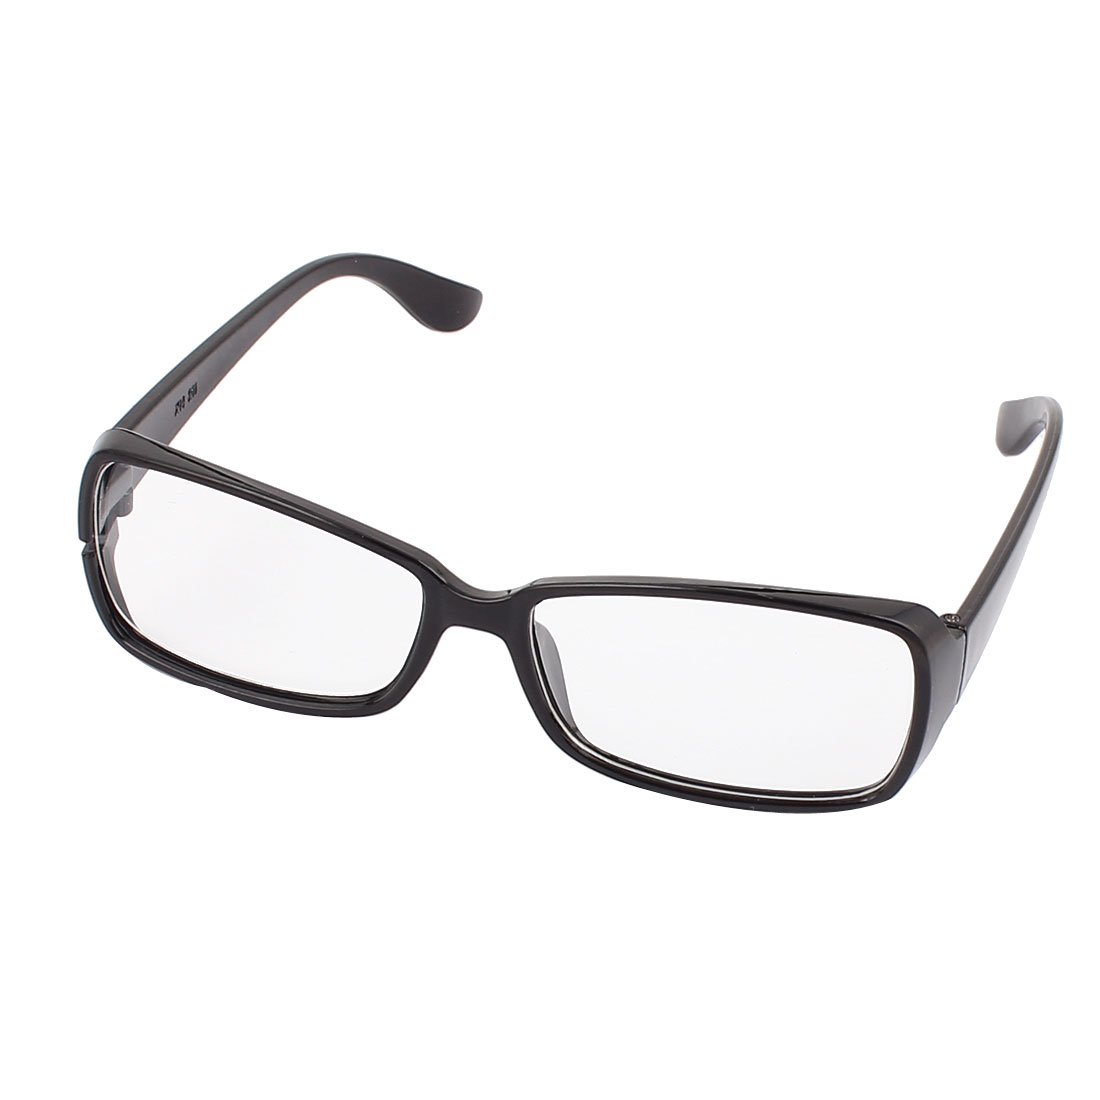 Clear Rectangle Lens Full Rim Eyewear Plain Plano Glasses Spectacles Black